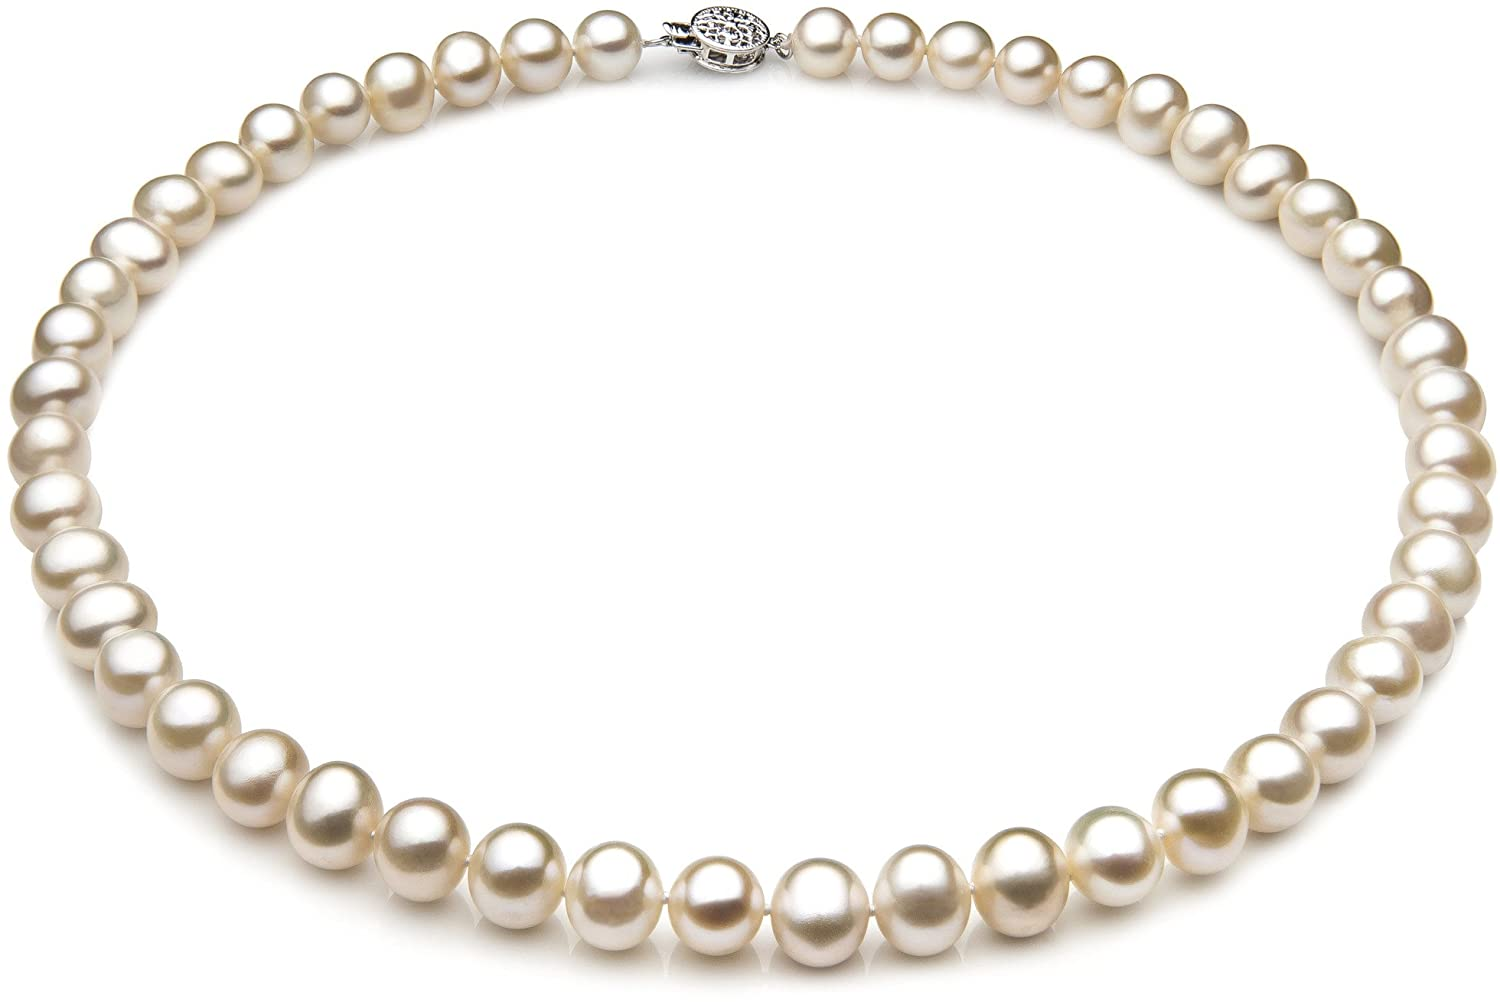 PearlsOnly - Single White 7-8mm A Quality Freshwater 925 Sterling Silver Cultured Pearl Necklace CA-AMZ-FW-W-A-78-N-16